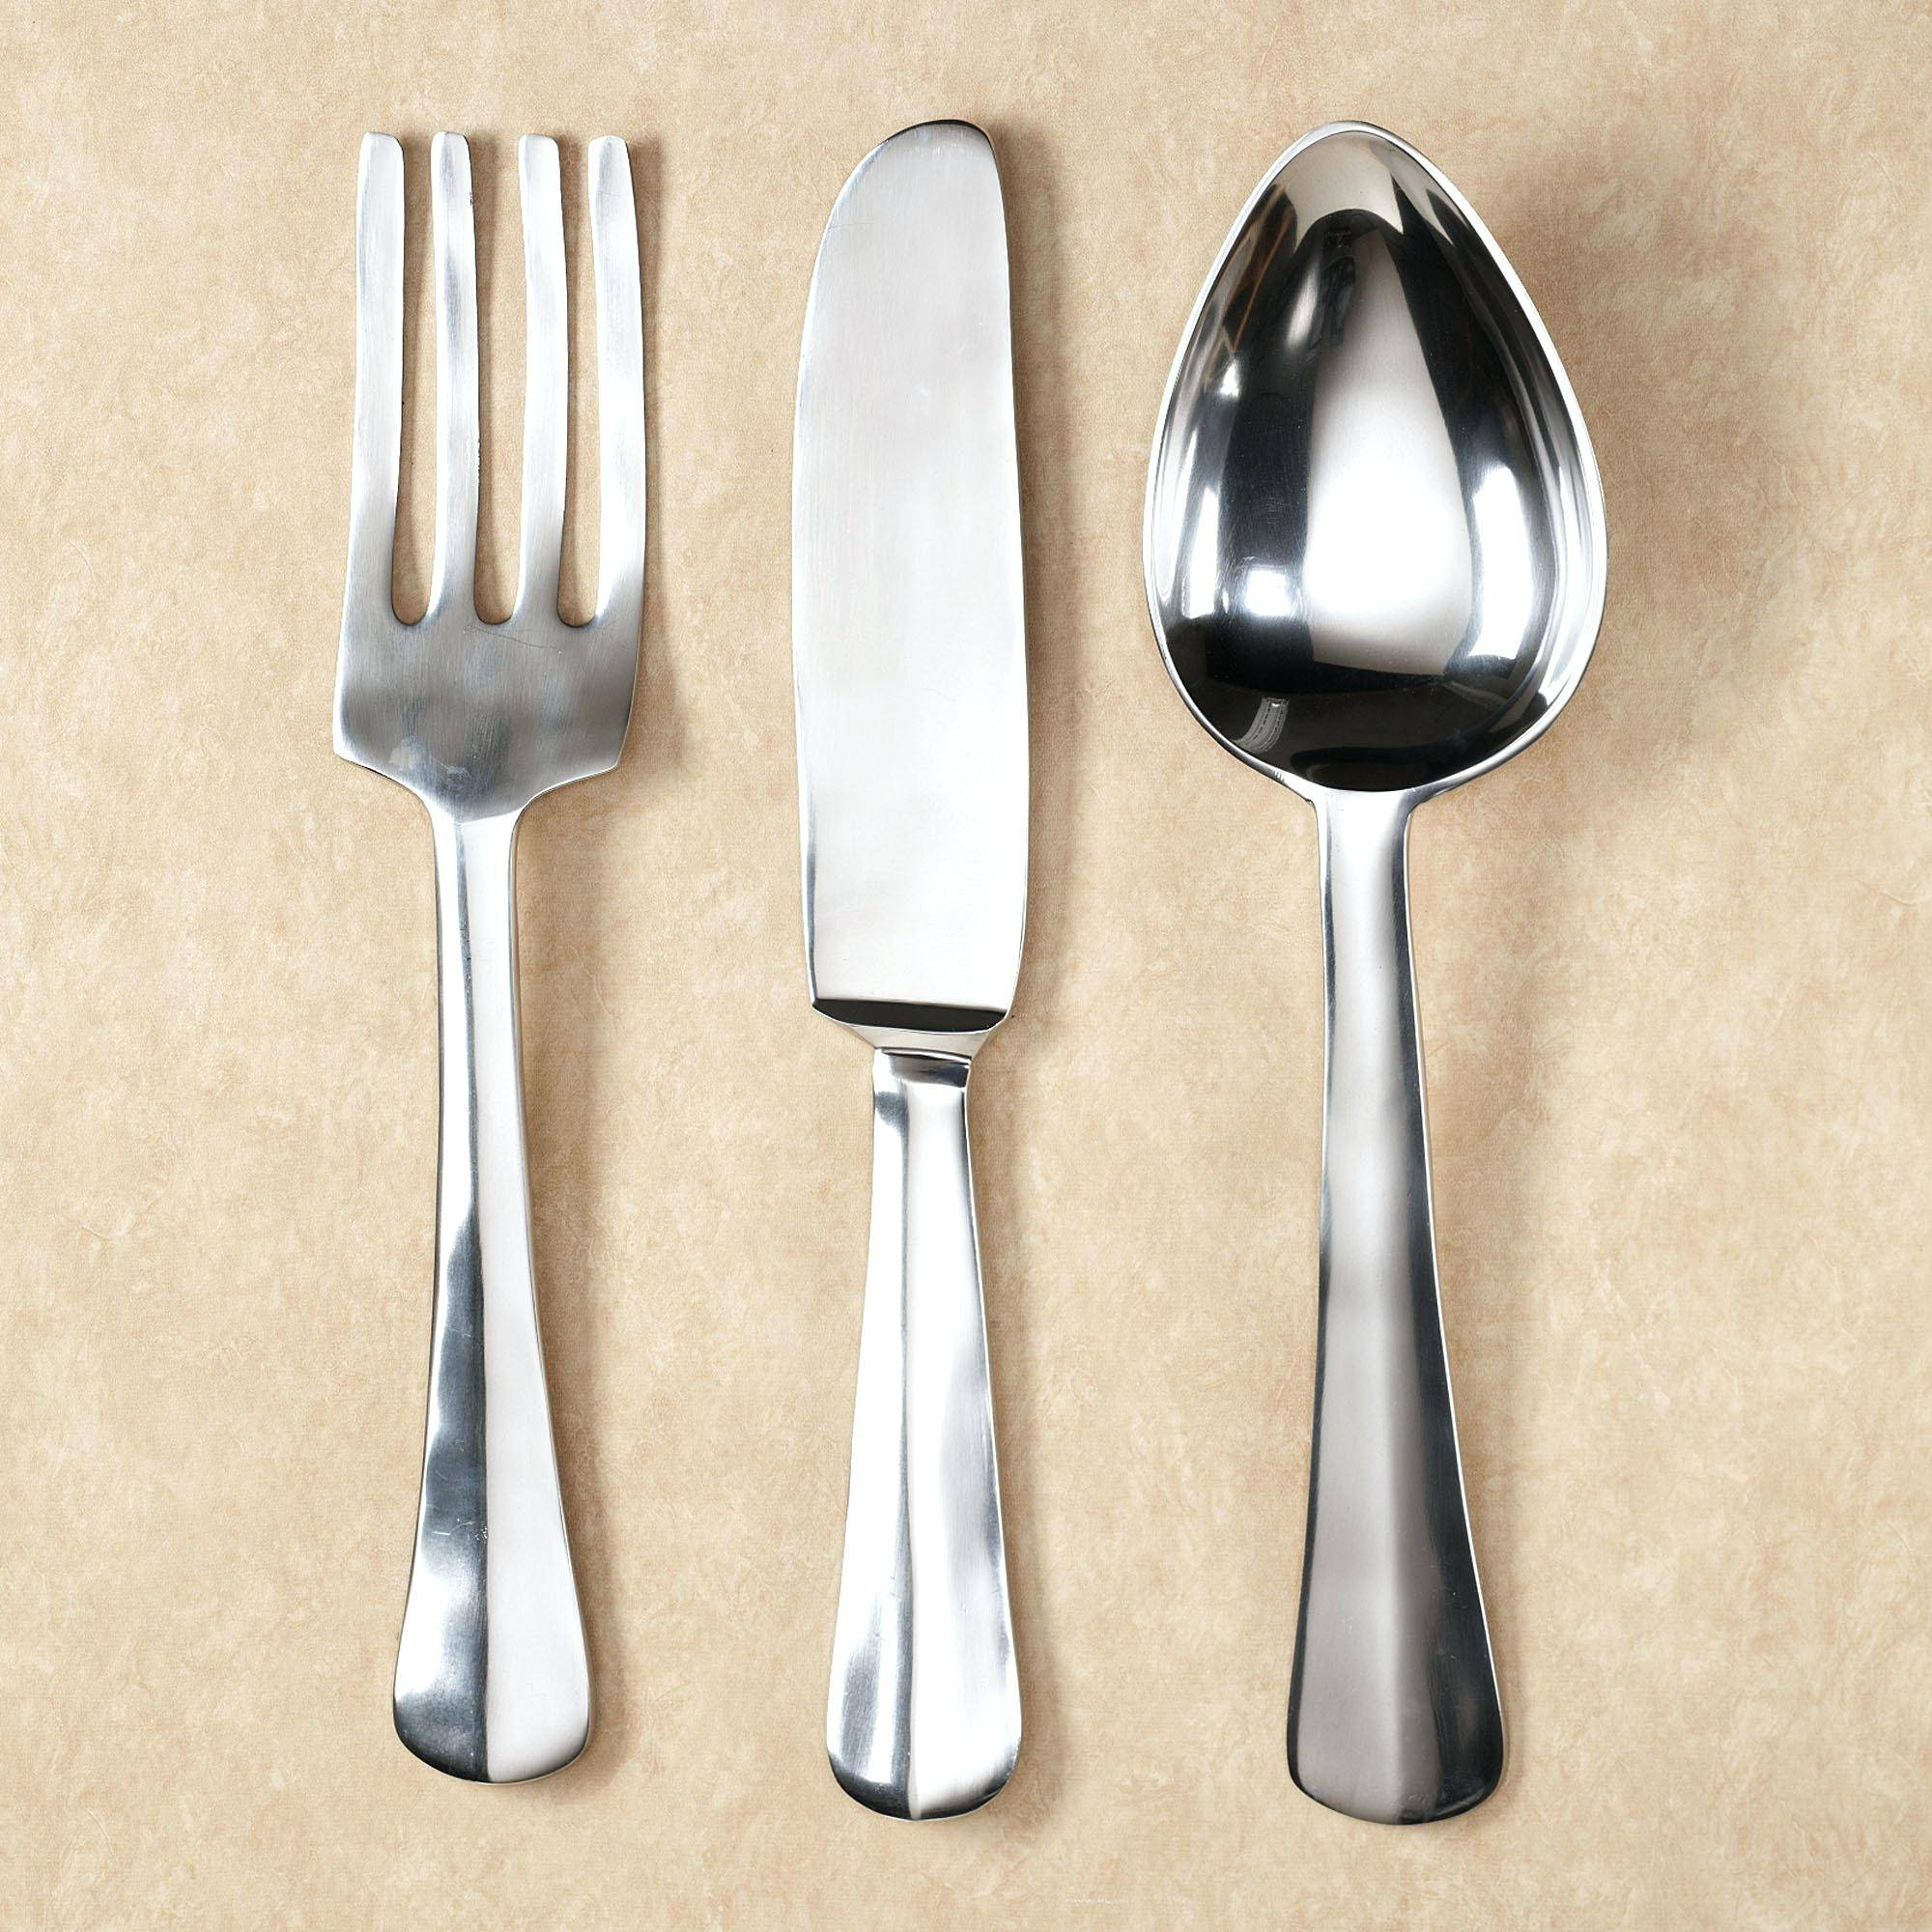 Articles With Oversized Wooden Spoon And Fork Wall Decor Tag Pertaining To Most Popular Big Spoon And Fork Wall Decor (View 2 of 30)